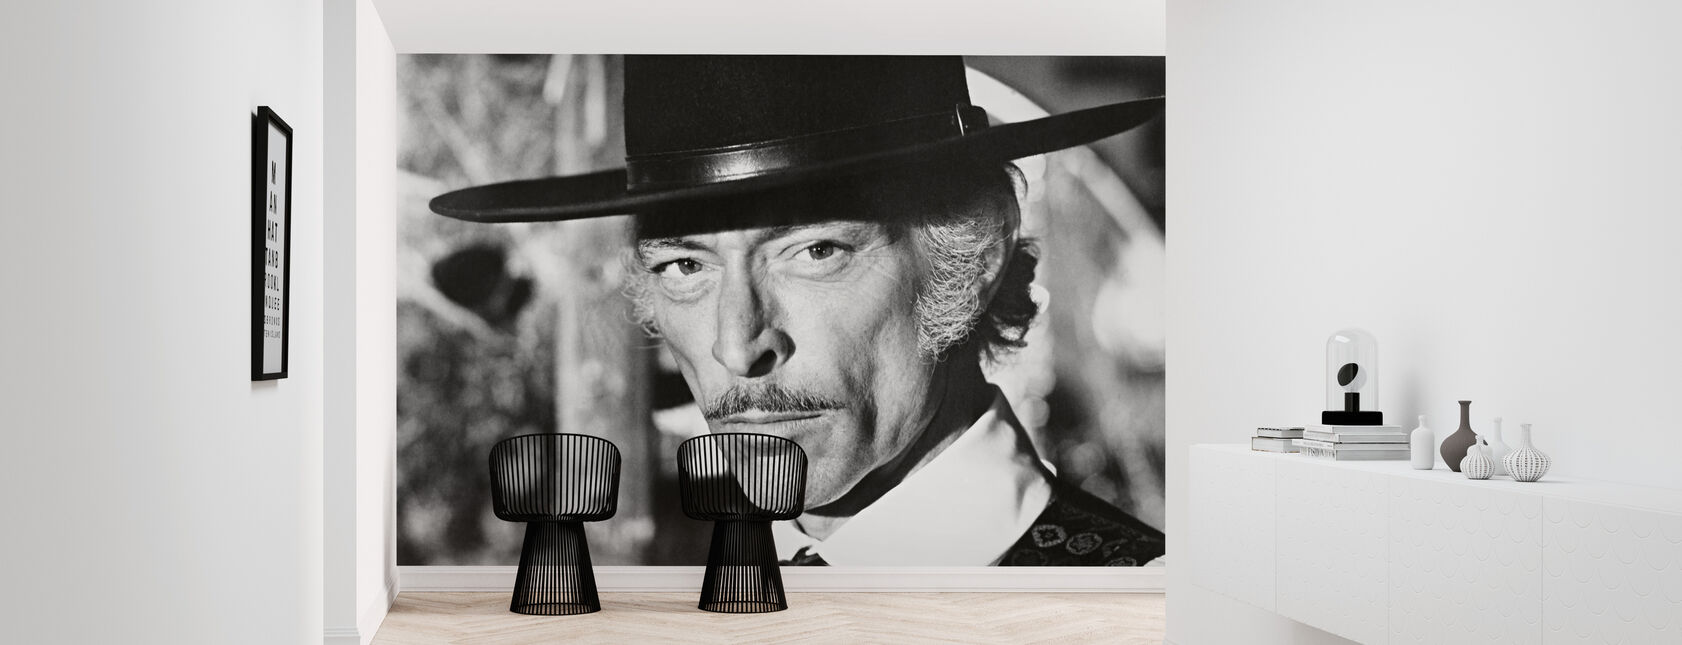 Return of Sabata - Lee Van Cleef - Wallpaper - Hallway